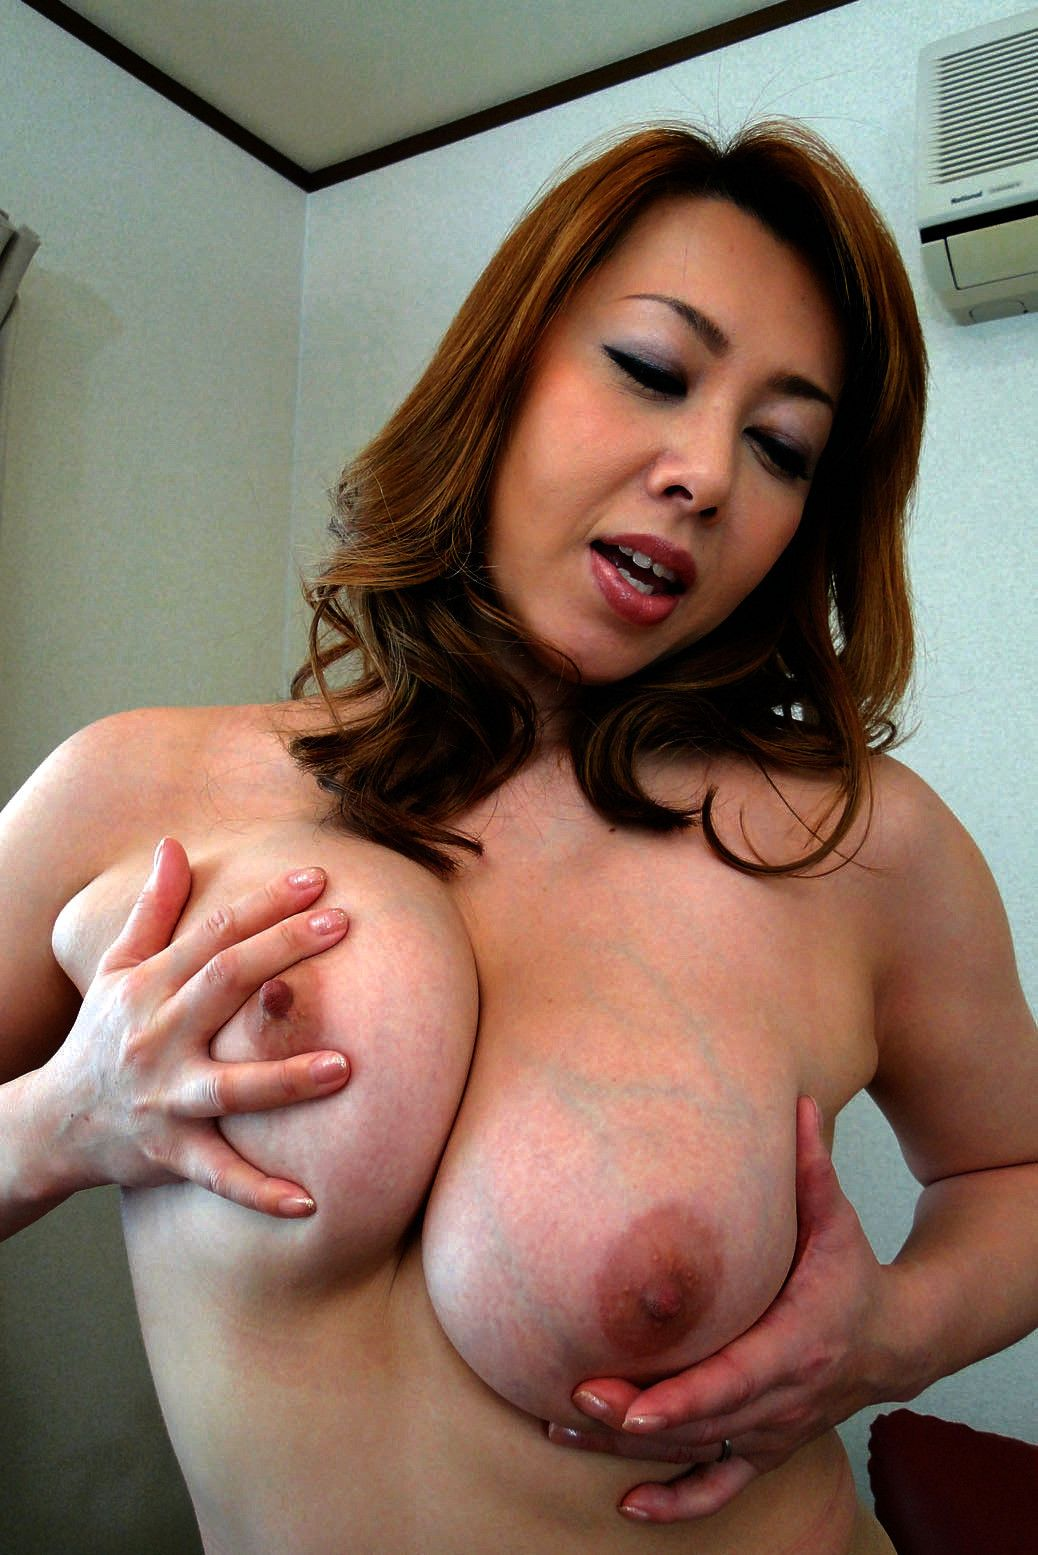 yumi nude photo Kazama